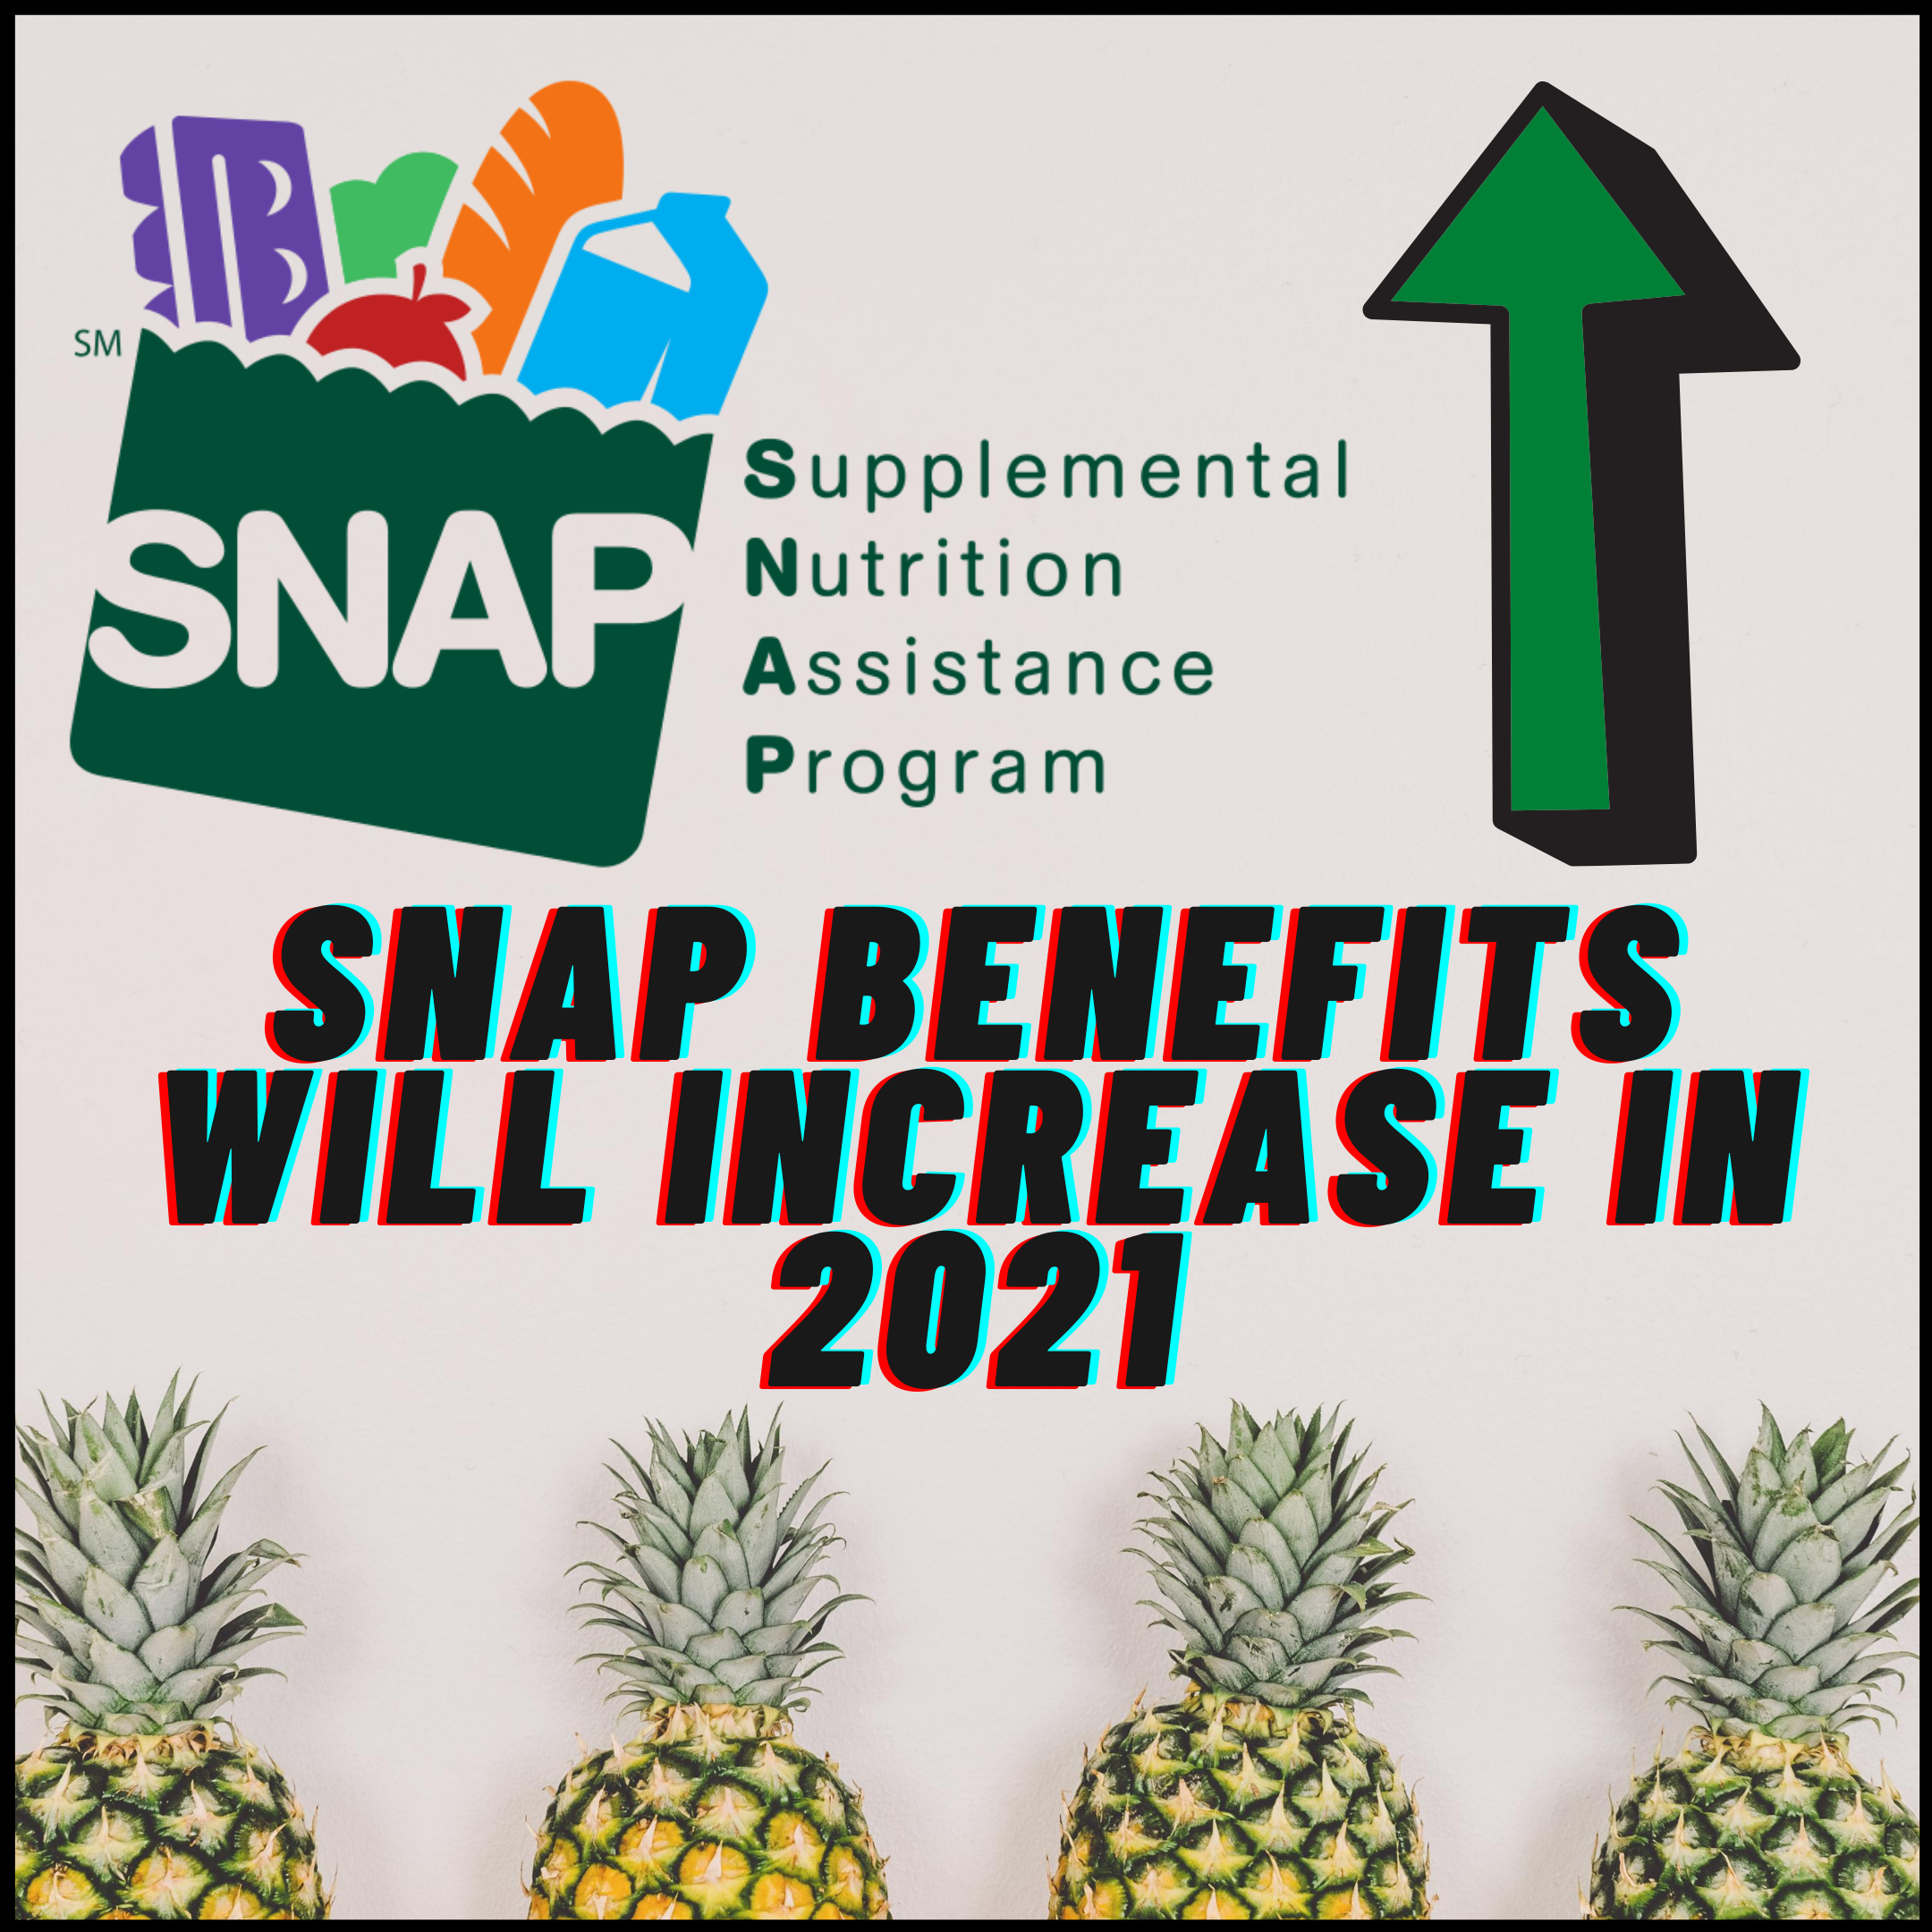 SNAP Benefits Increasing